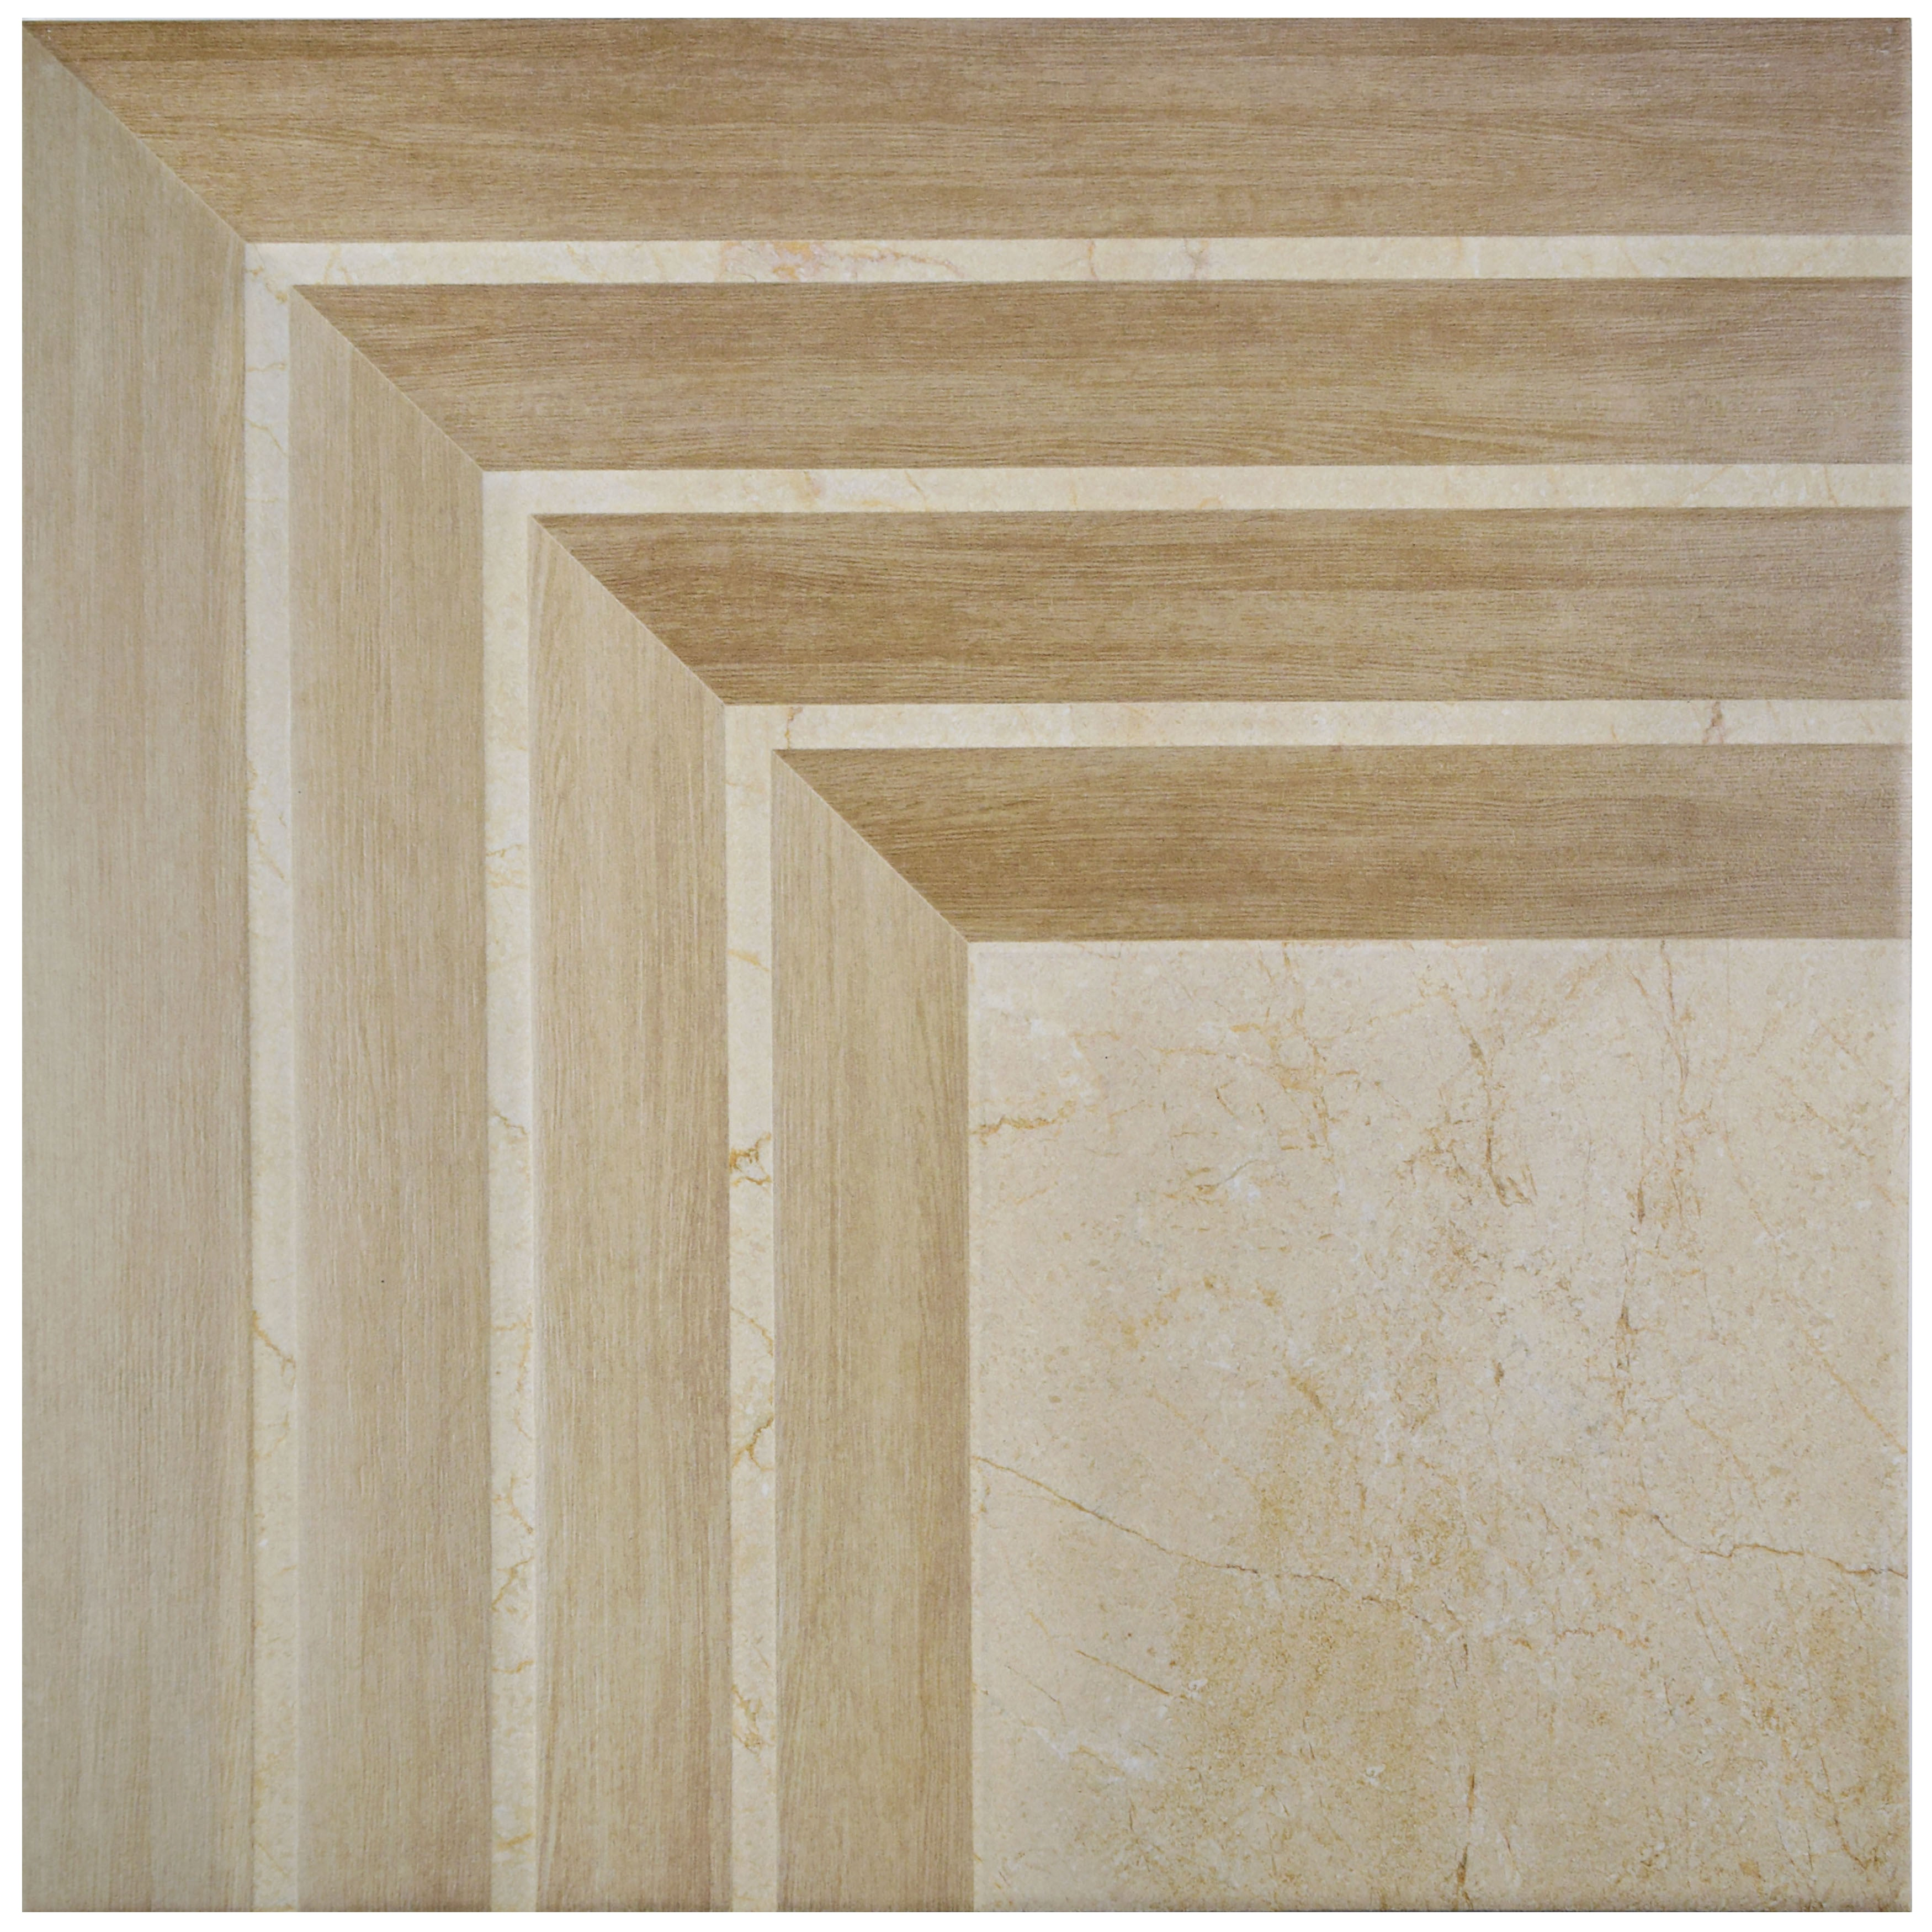 Somertile 17 75x17 75 Inch Illusion Jet Beige Ceramic Floor And Wall Tile 5 Tiles 11 25 Sqft Free Shipping Today 11817132